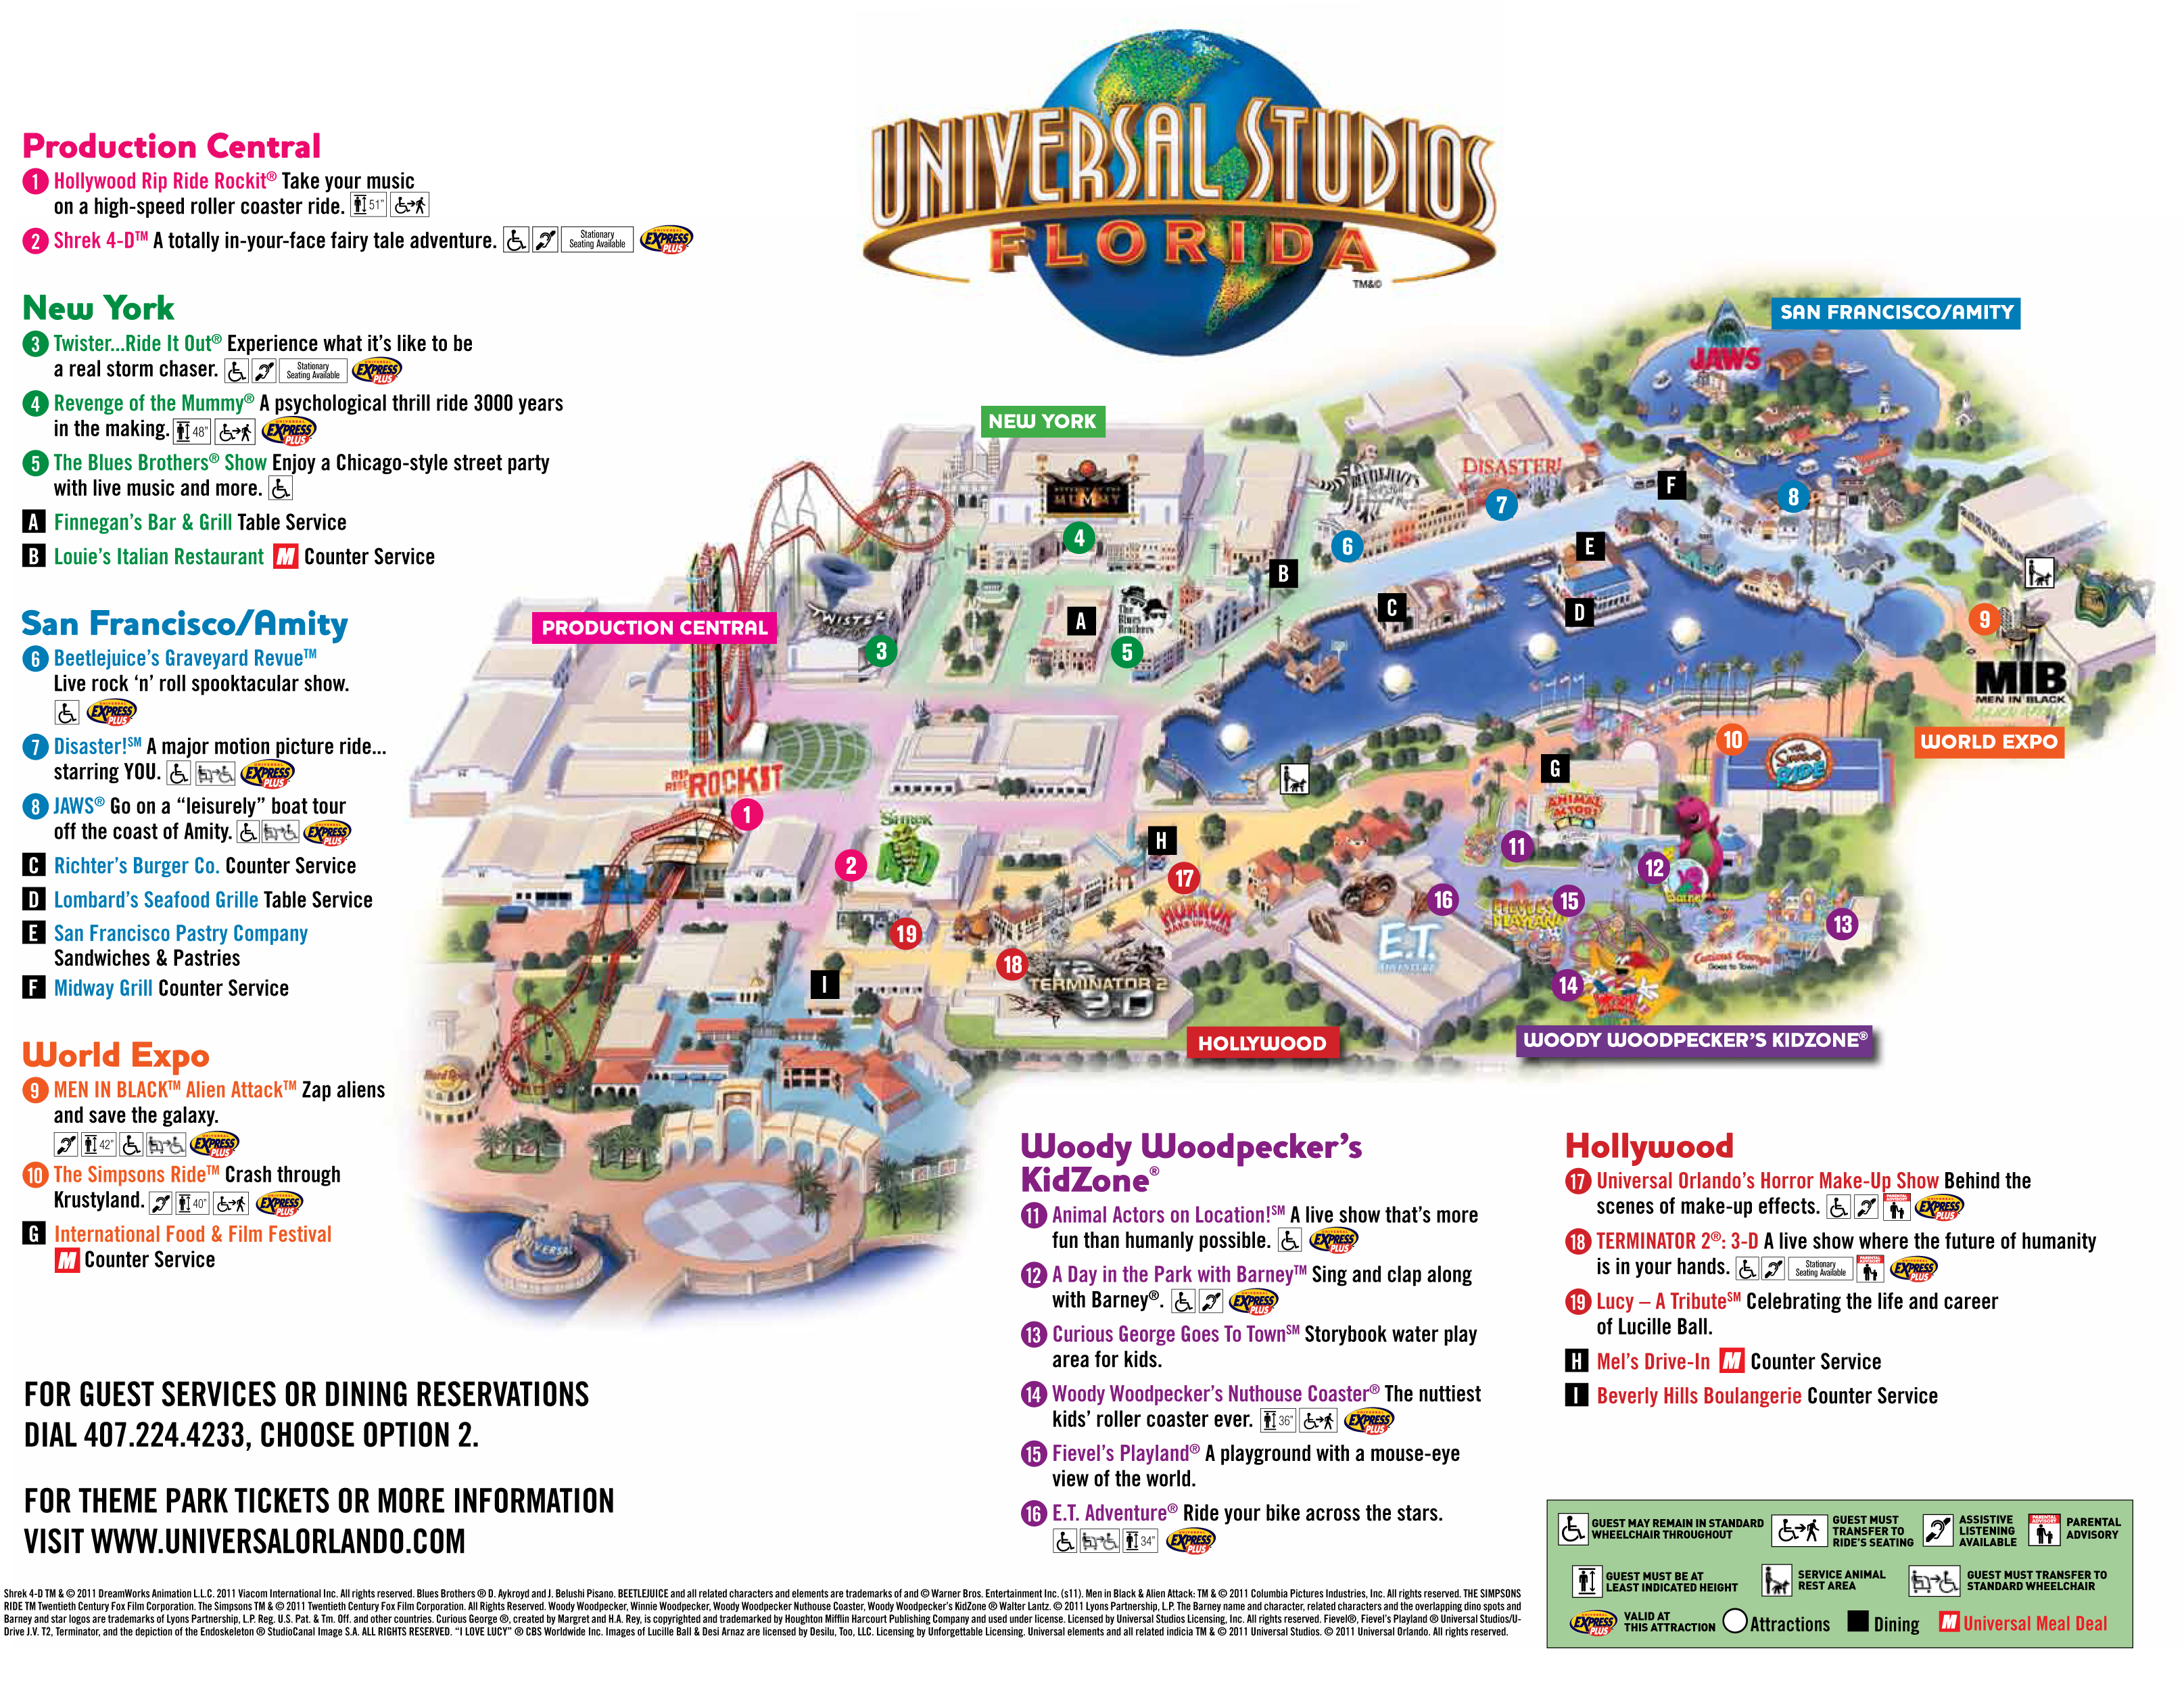 Universal studios up up and away with me universal studios orlando map gumiabroncs Gallery